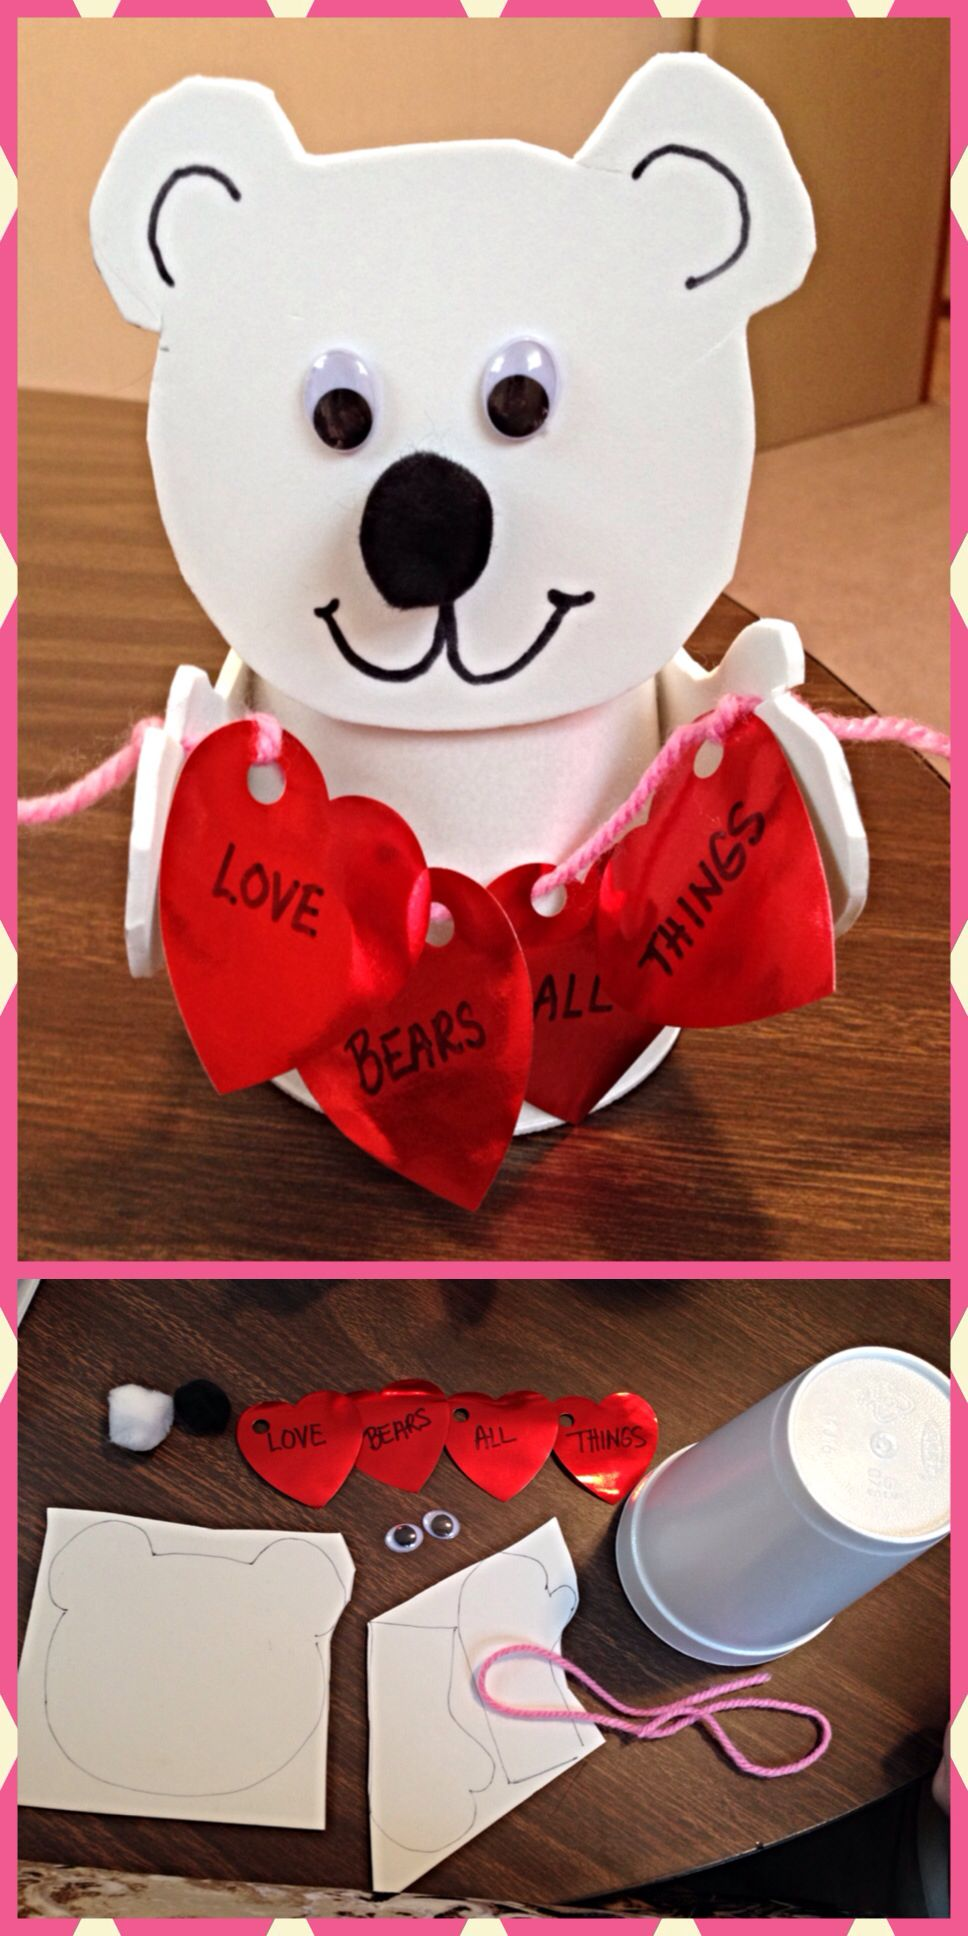 Bear Valentine Craft(love bears all things). Items needed: white craft foam, black & white Pom Pom, Googly eyes, large white cup, yarn, hearts cut from construction paper, sharpie and glue gun. Cut head and arm shapes out of foam and hot glue to the cup. Glue the white tail on back, black nose and eyes on the face and draw the mouth and ears. Cut out four hearts and punch holes thru each. Write the words of the verse on each heart and slide them on the string. Hang between the hands and tie…